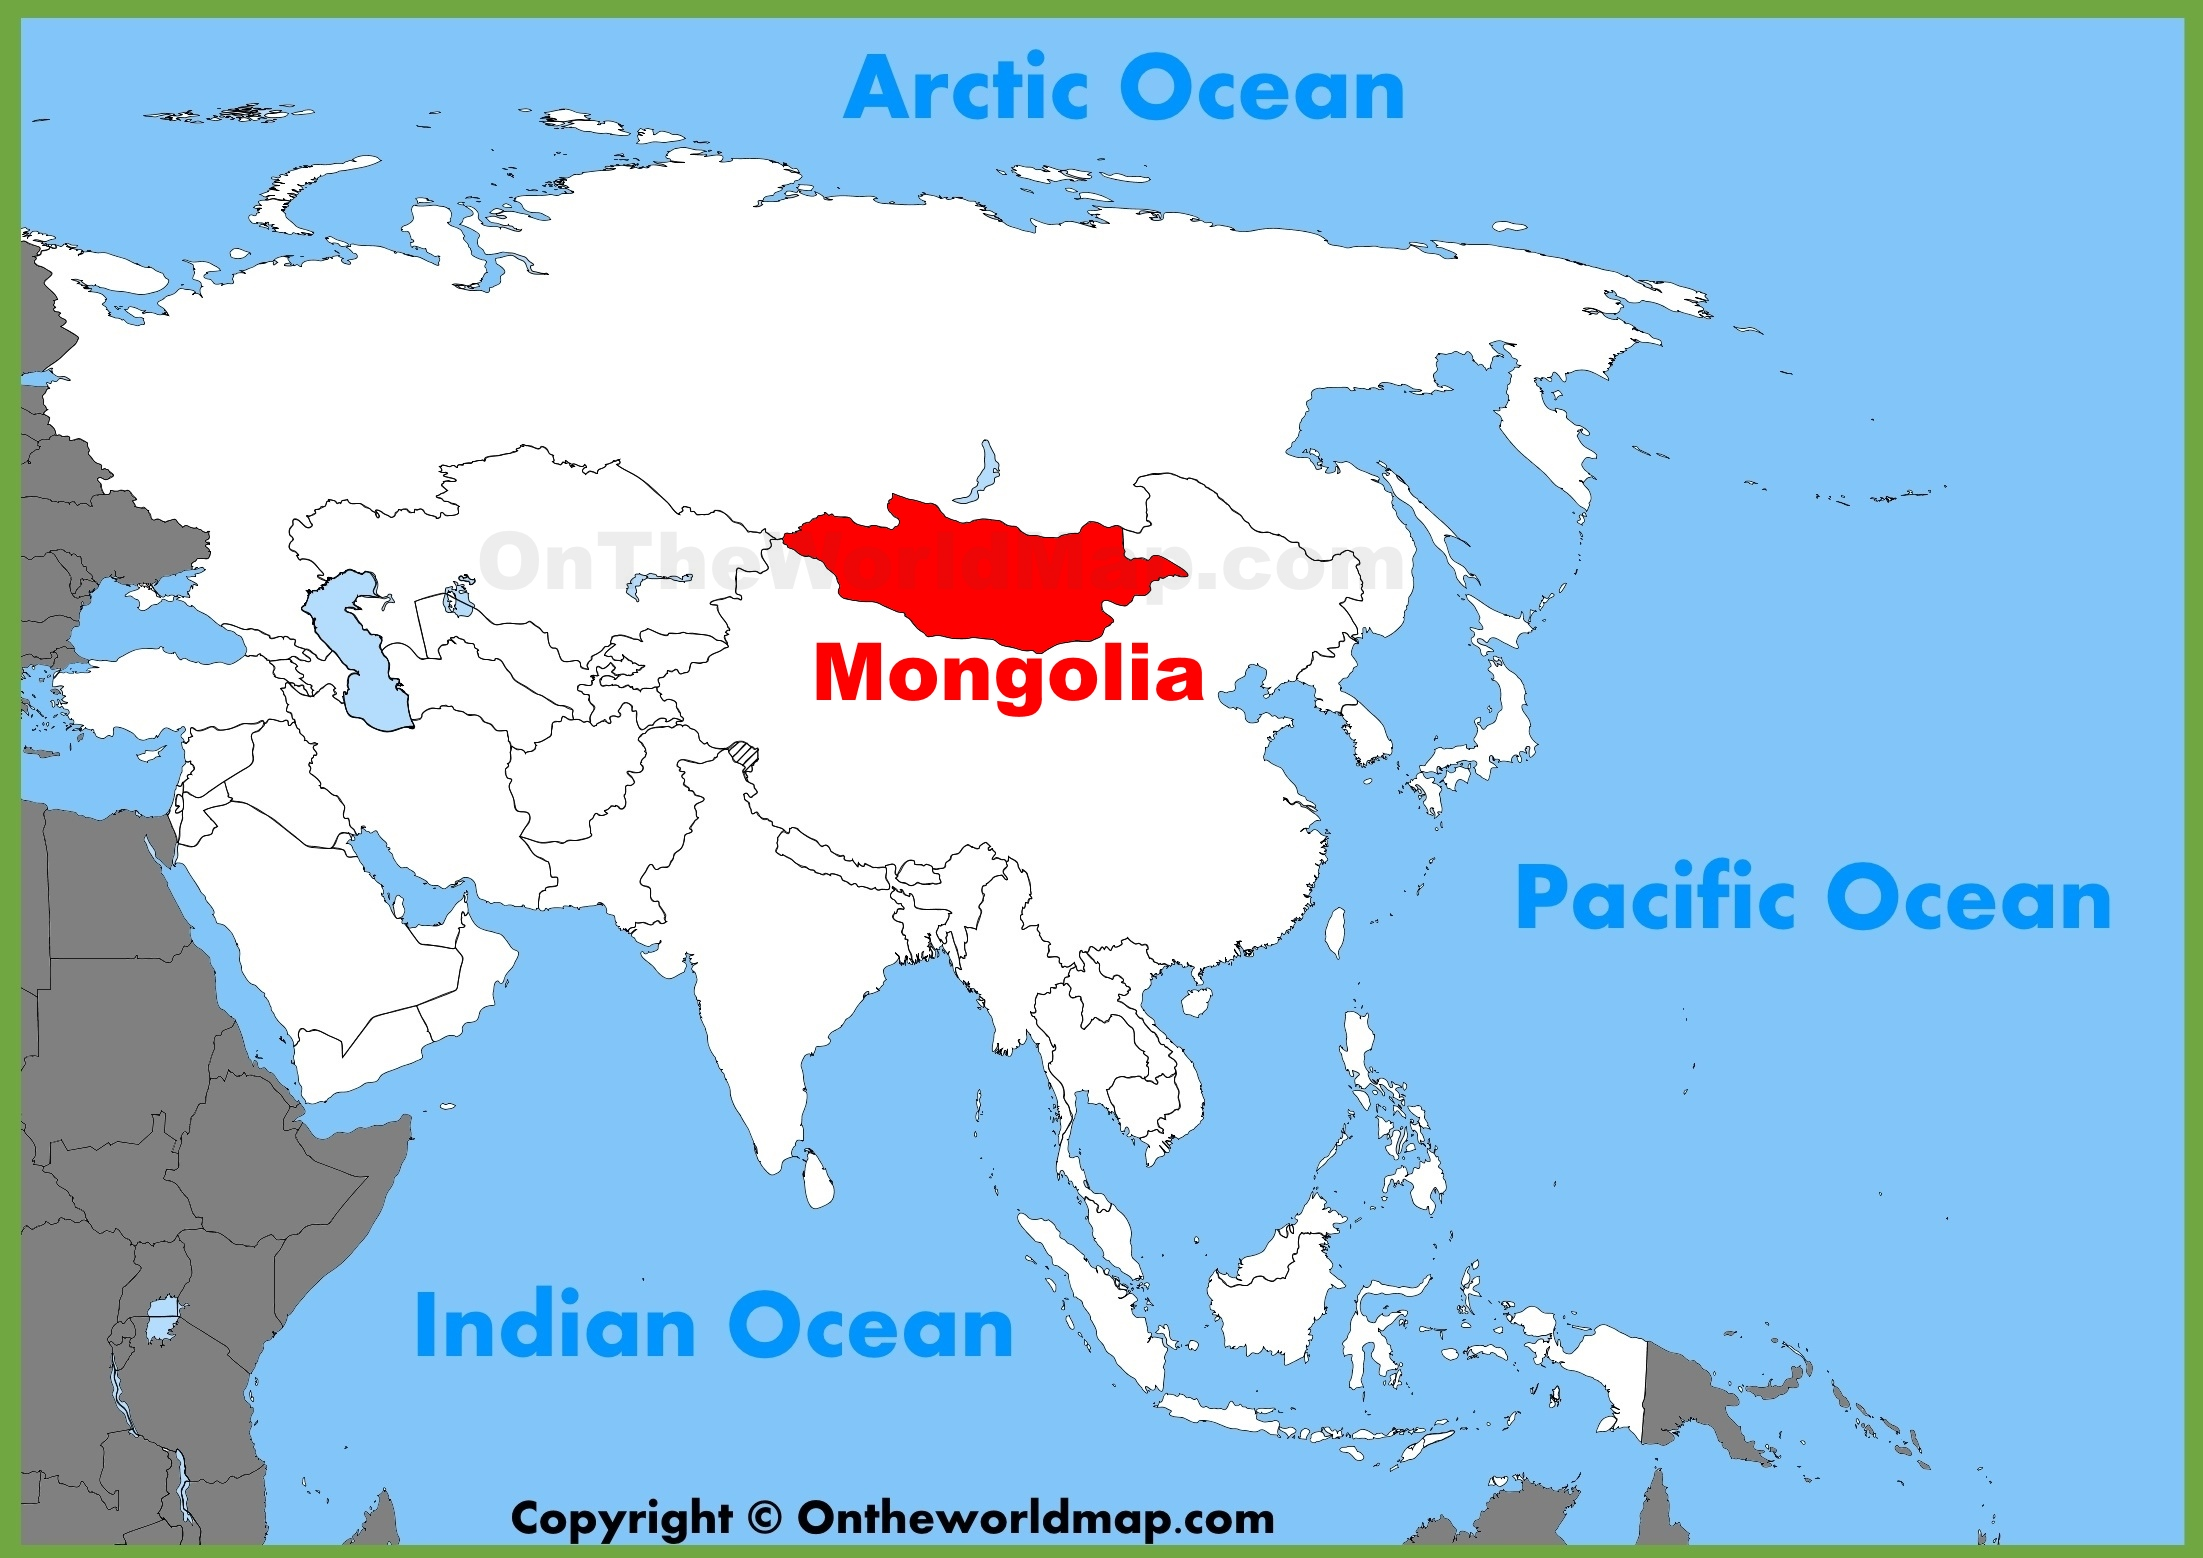 Mongolia Location Map Mongolia location on the Asia map